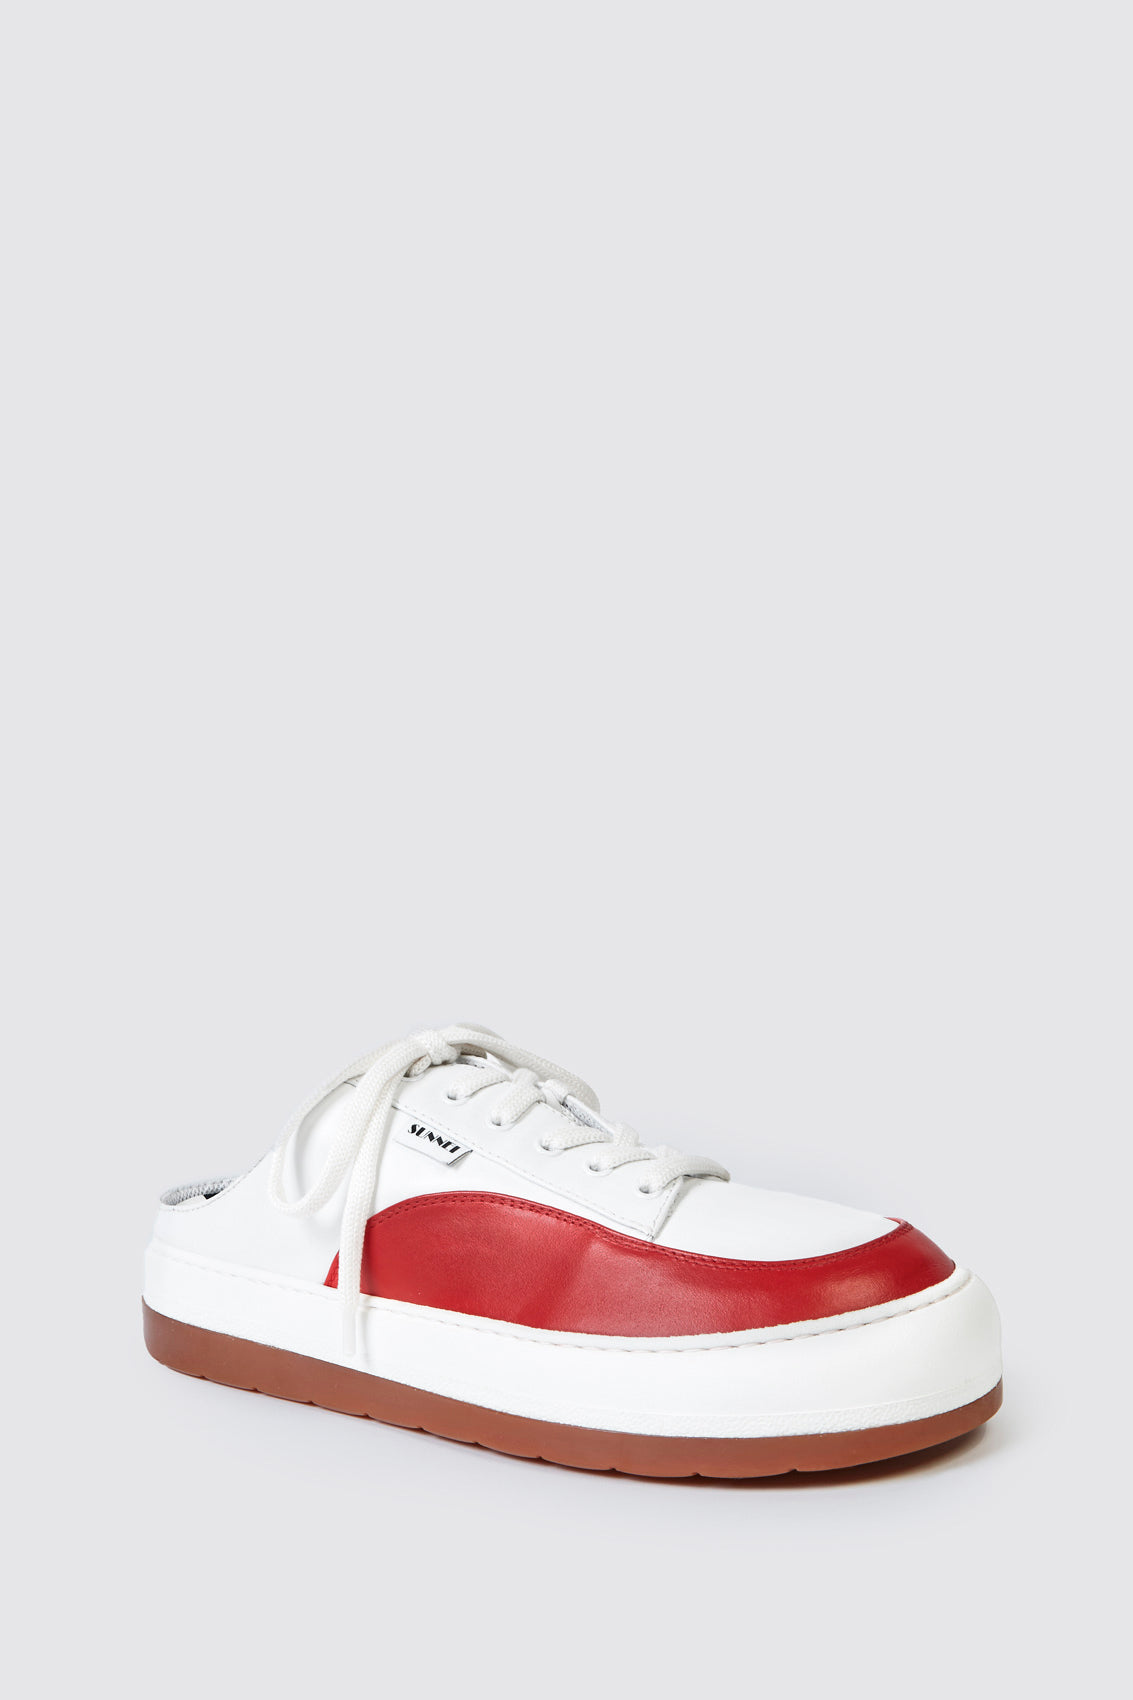 WHITE & RED LEATHER DREAMY SABOT